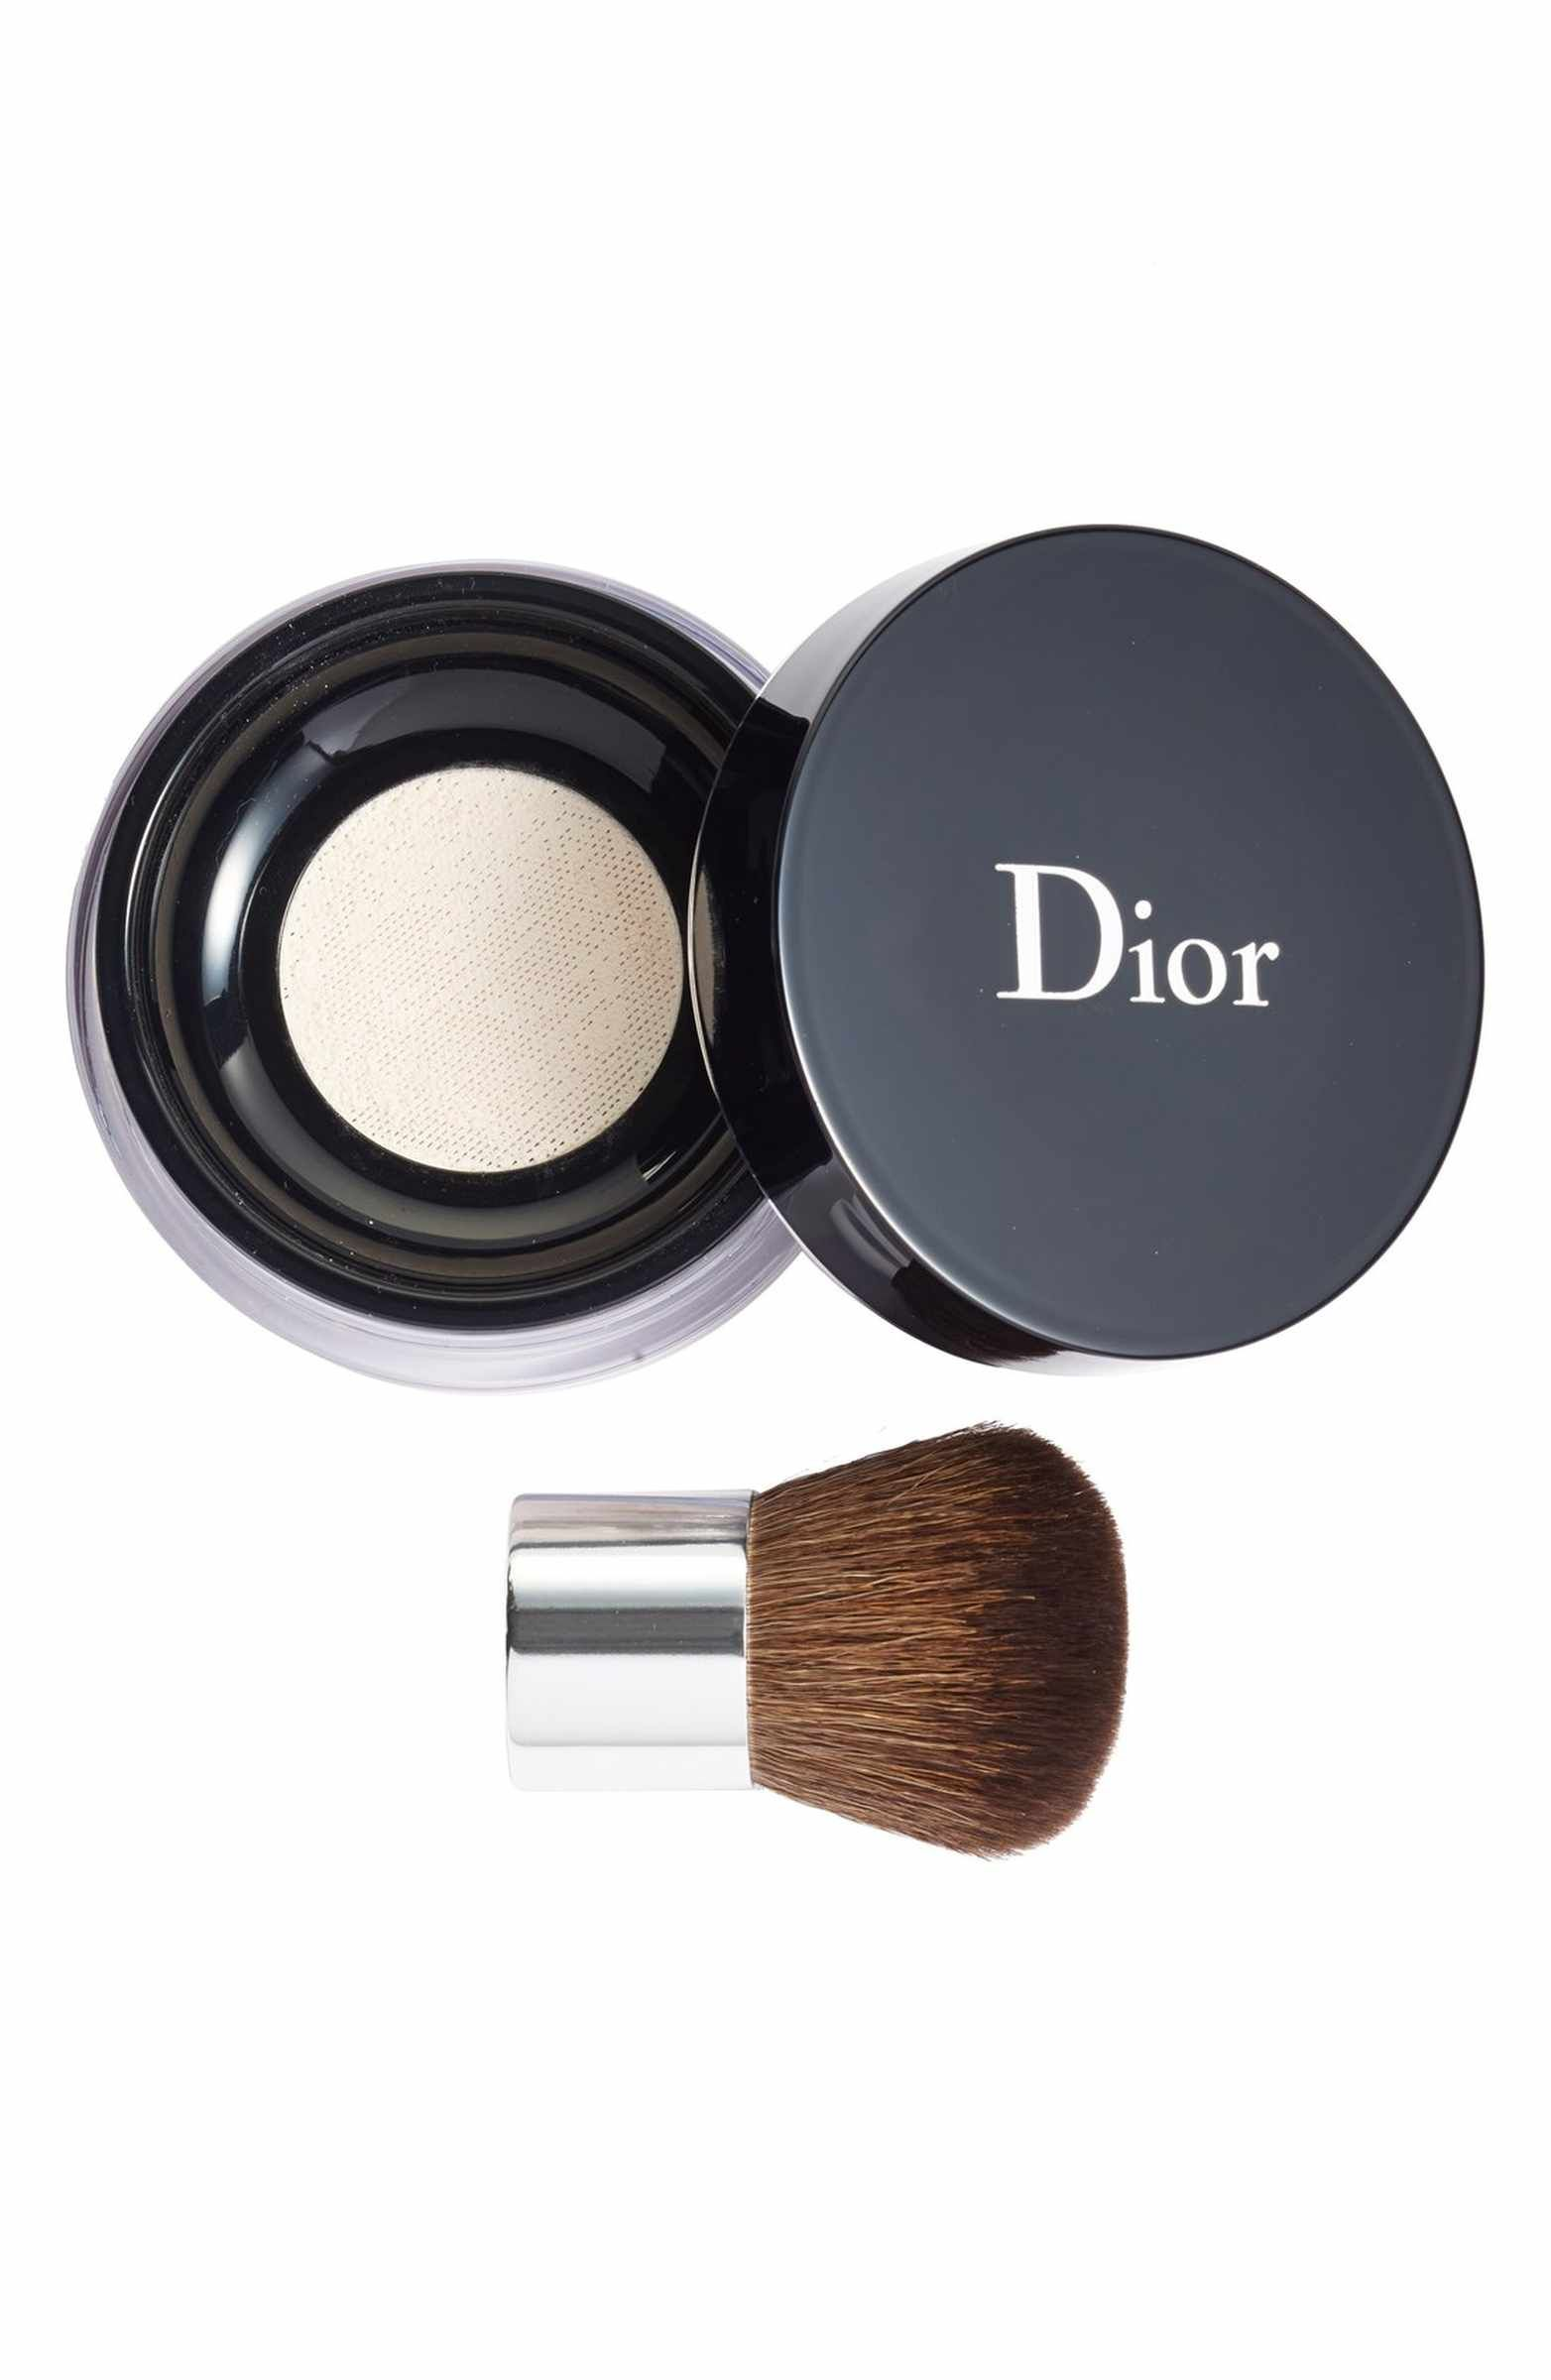 Dior Diorskin Forever & Ever Control Extreme Perfection